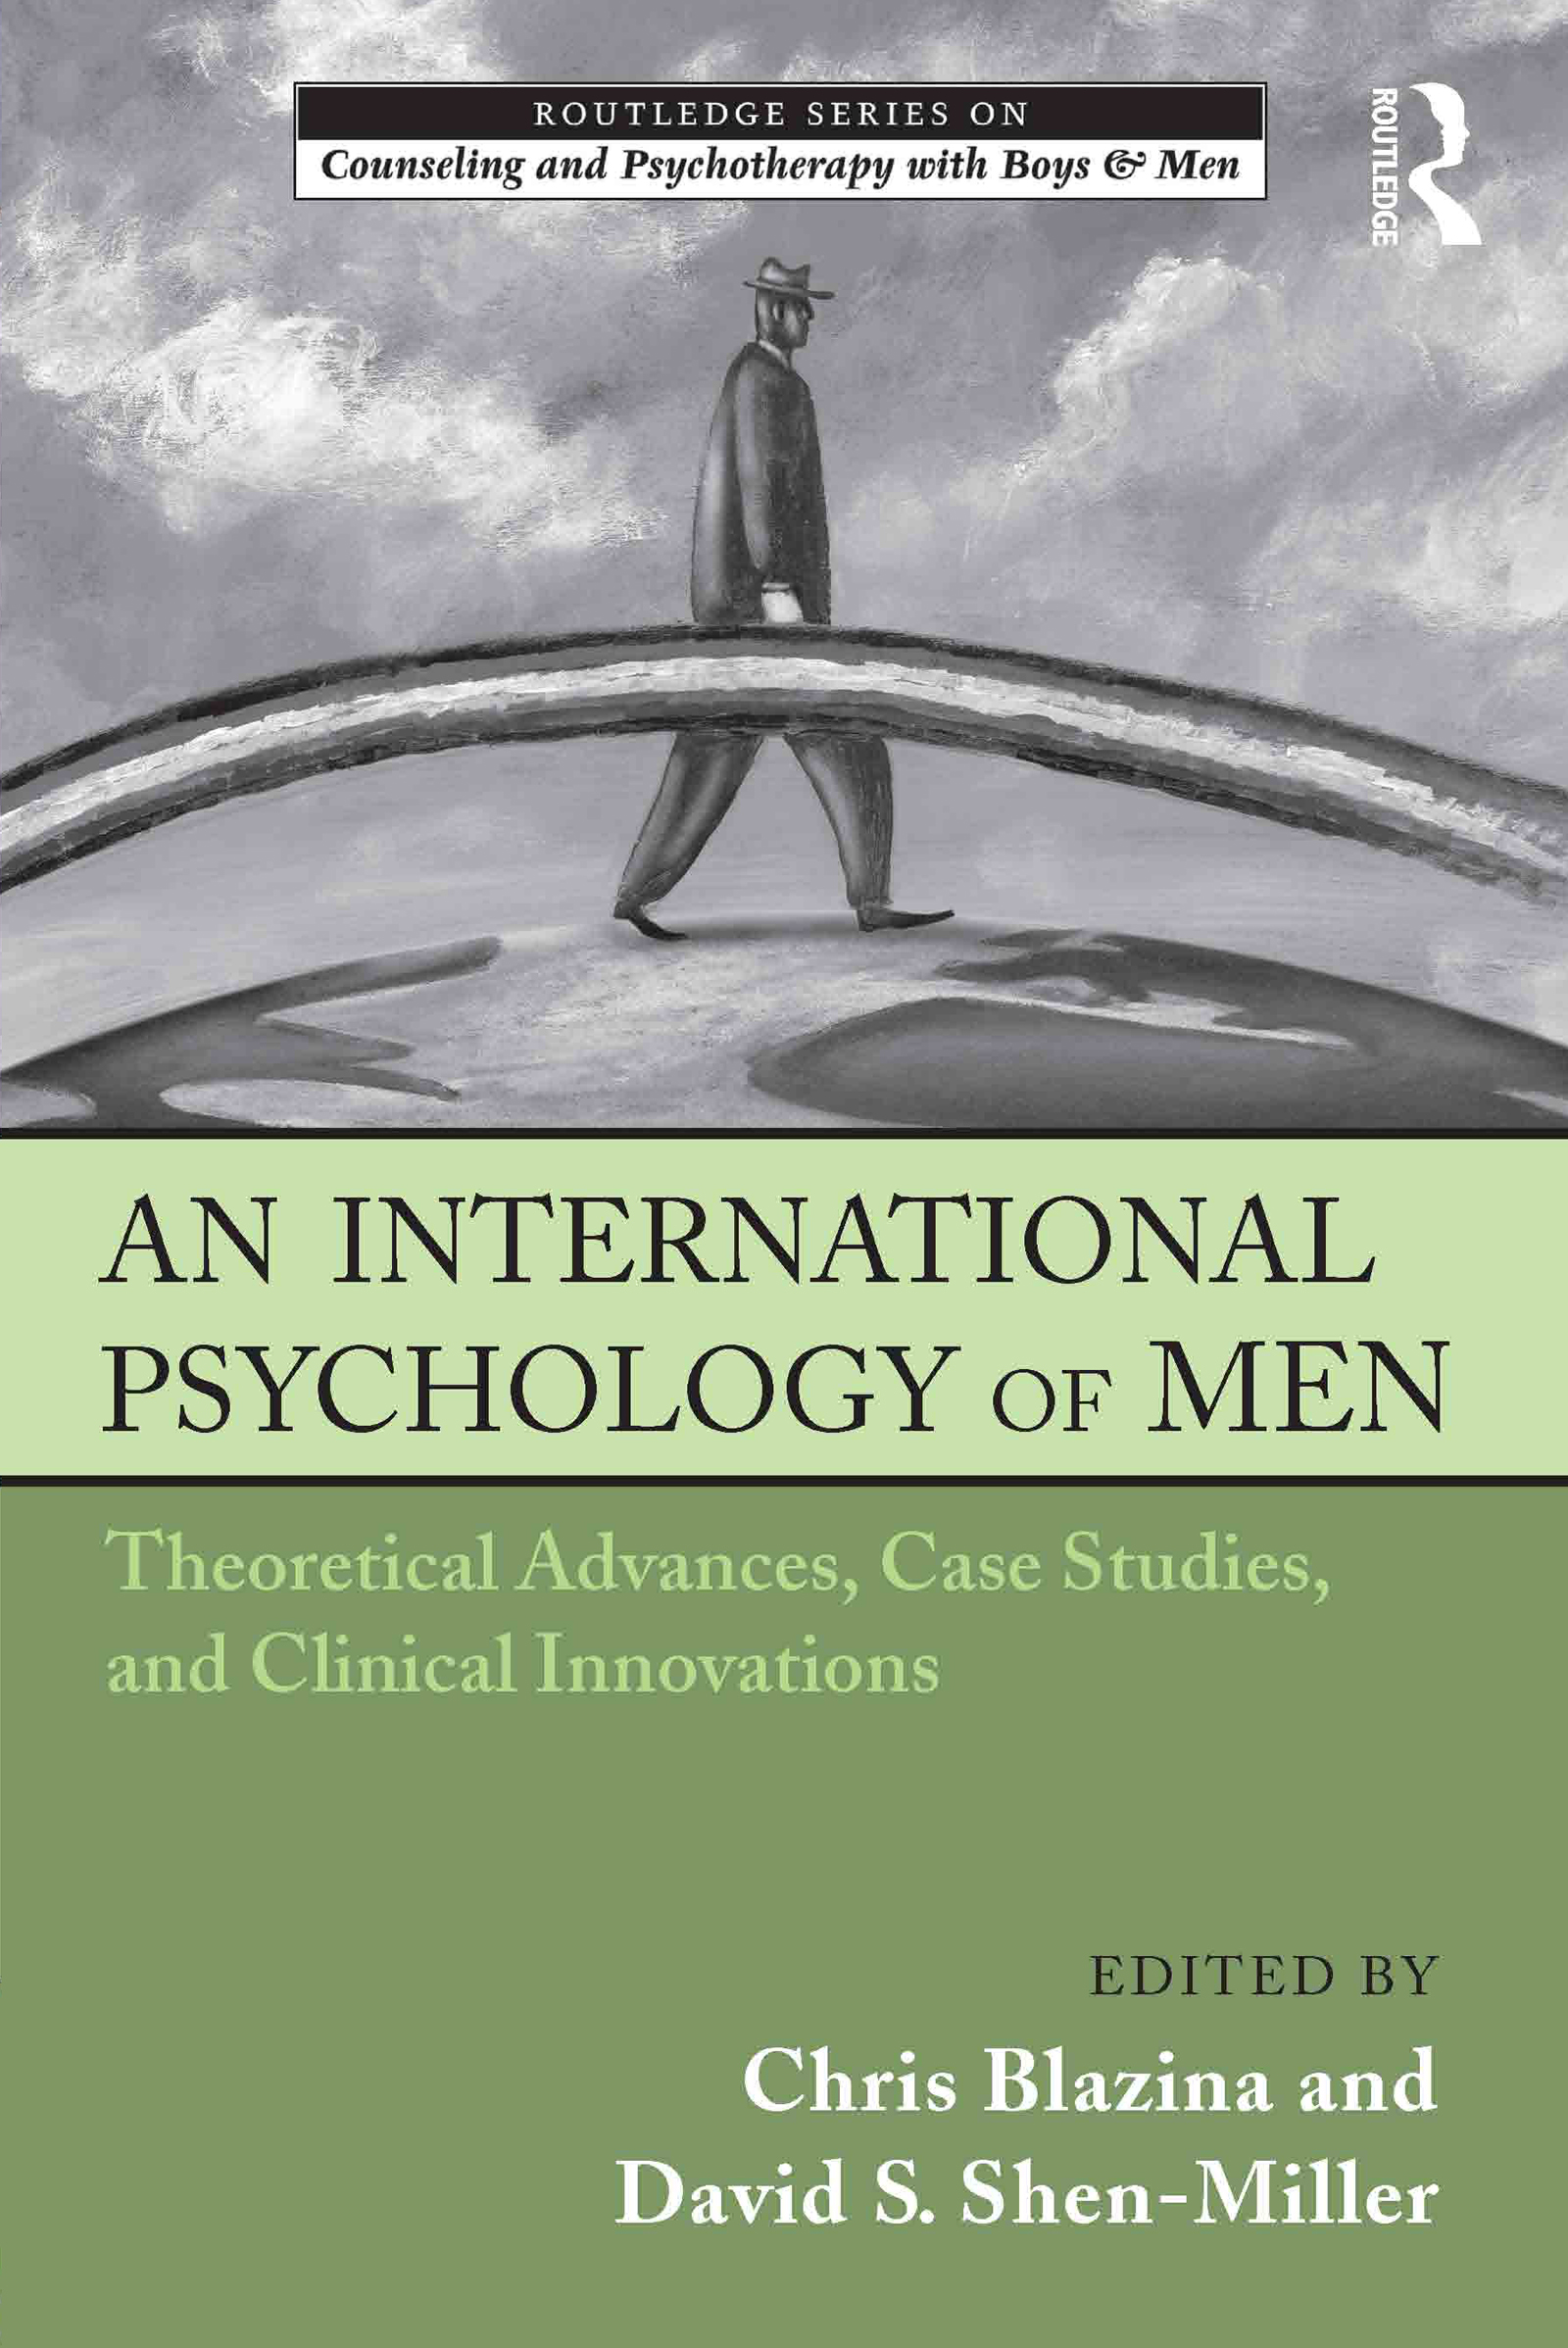 An International Psychology of Men: Theoretical Advances, Case Studies, and Clinical Innovations book cover